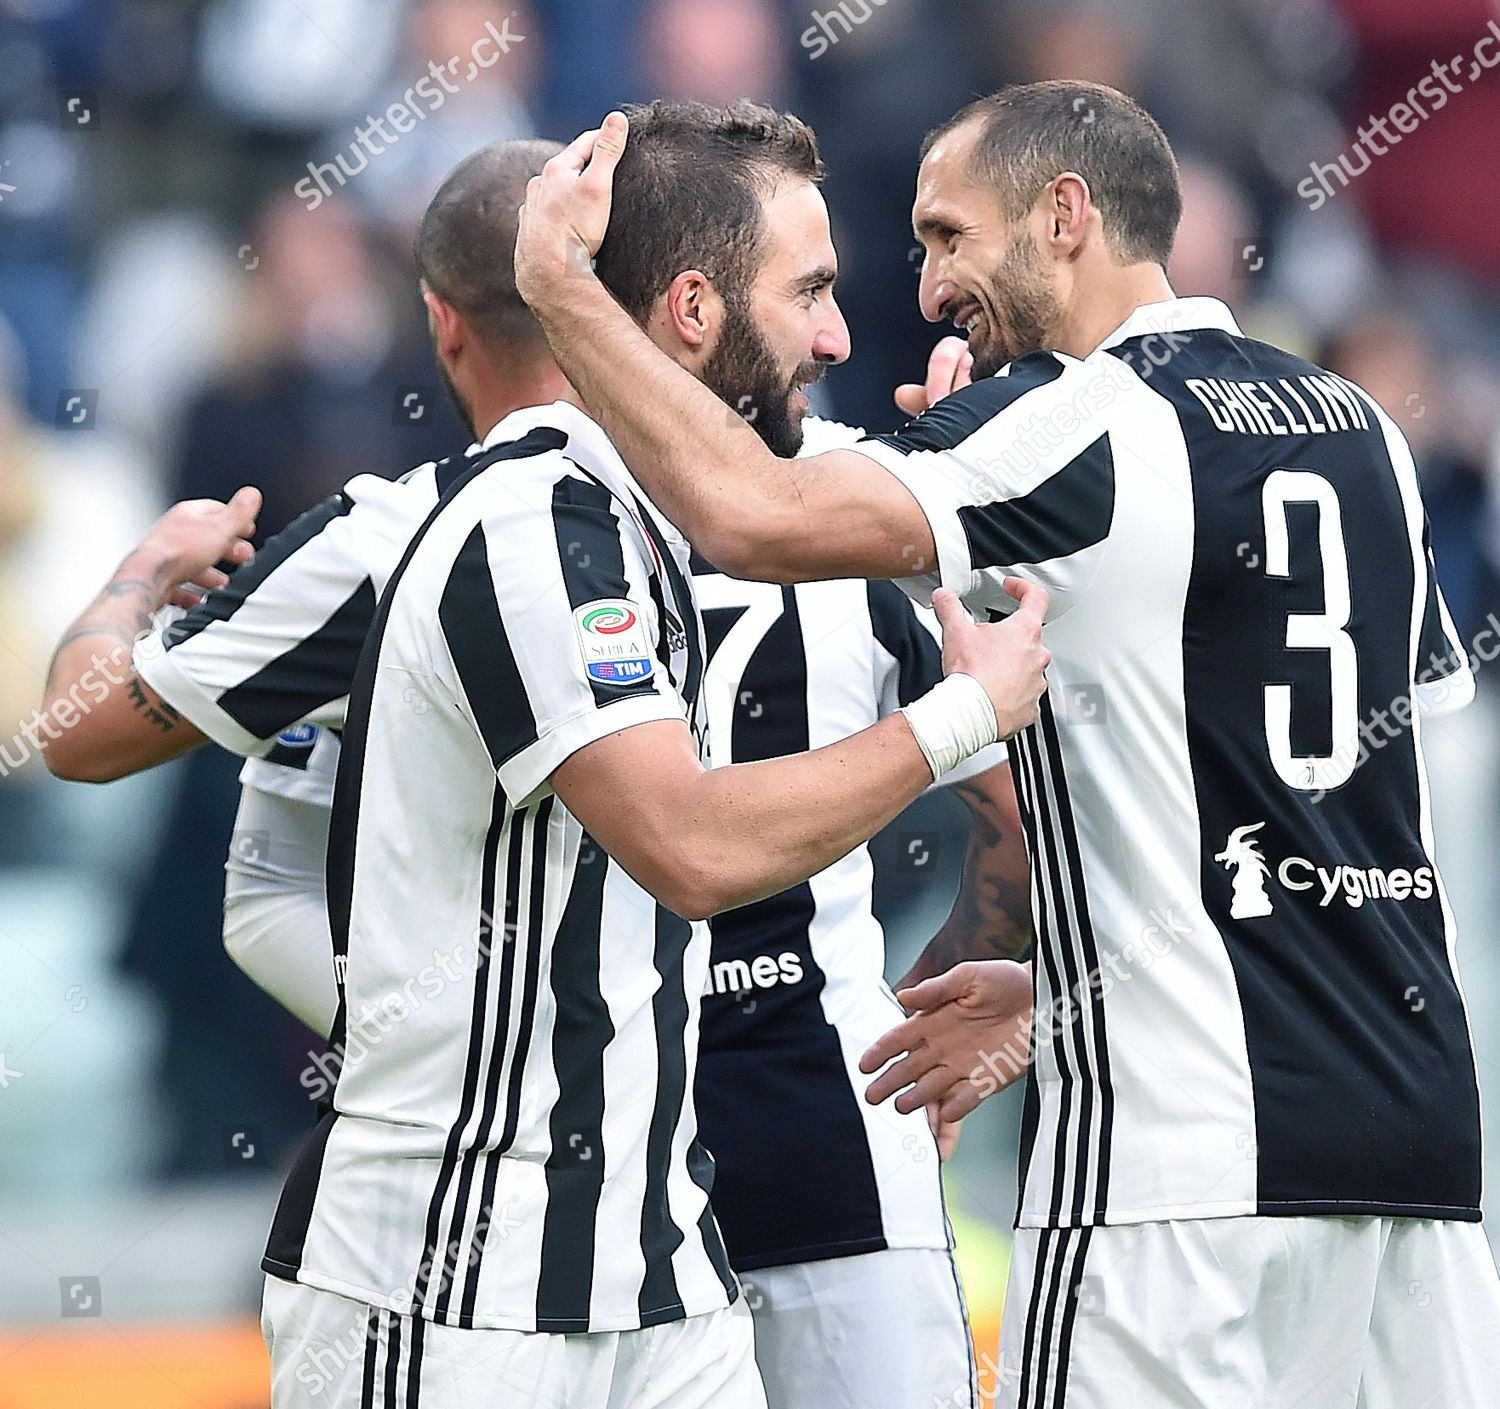 ef459121be4 Juventus Gonzalo Higuain L celebrates team mate Editorial Stock ...